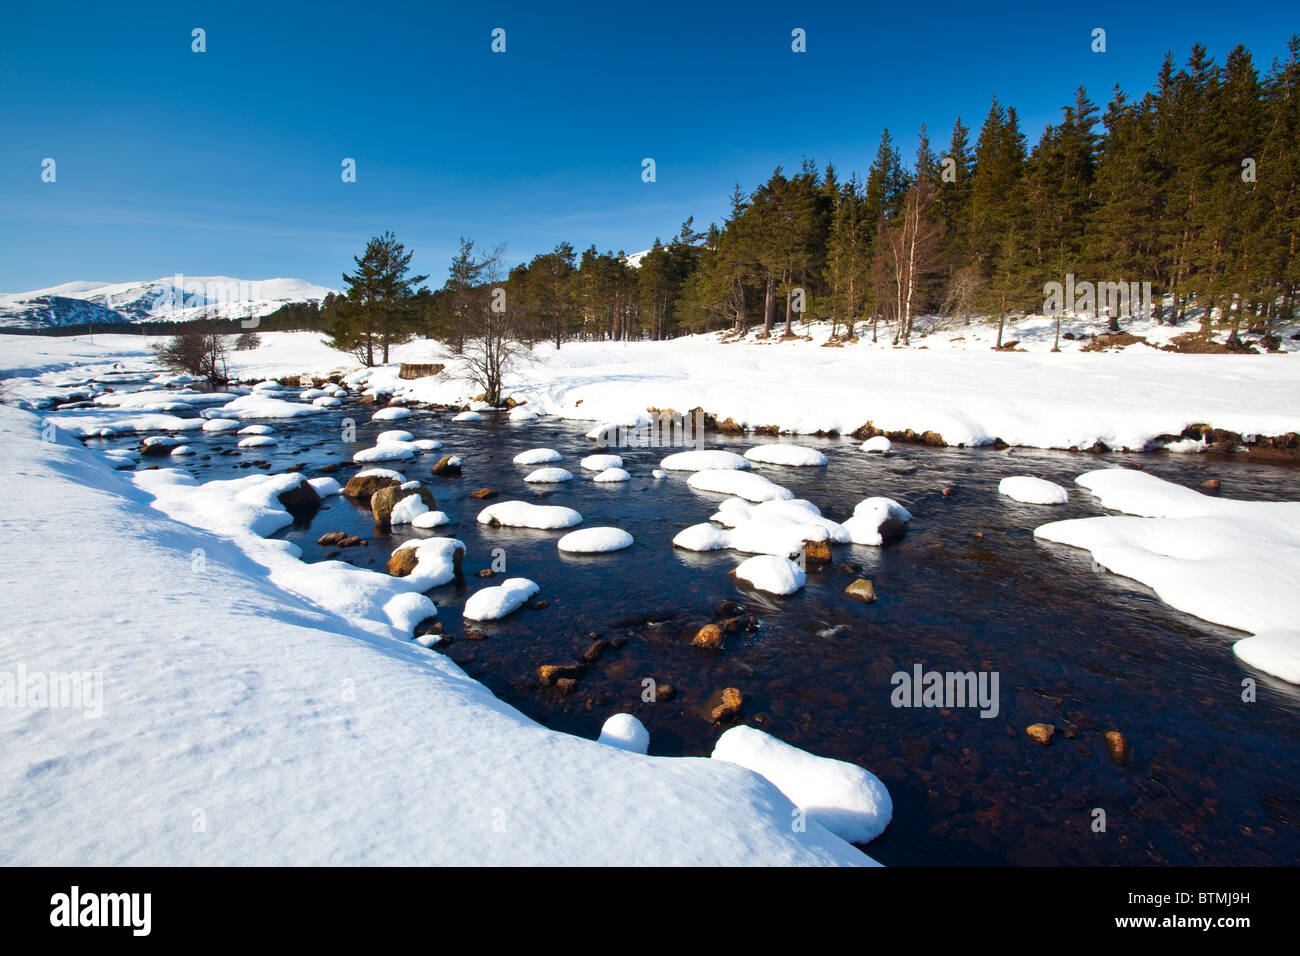 Scotland, Scottish Highlands, Cairngorms National Park. The snow covered River Muick running near a forest  in Glen - Stock Image